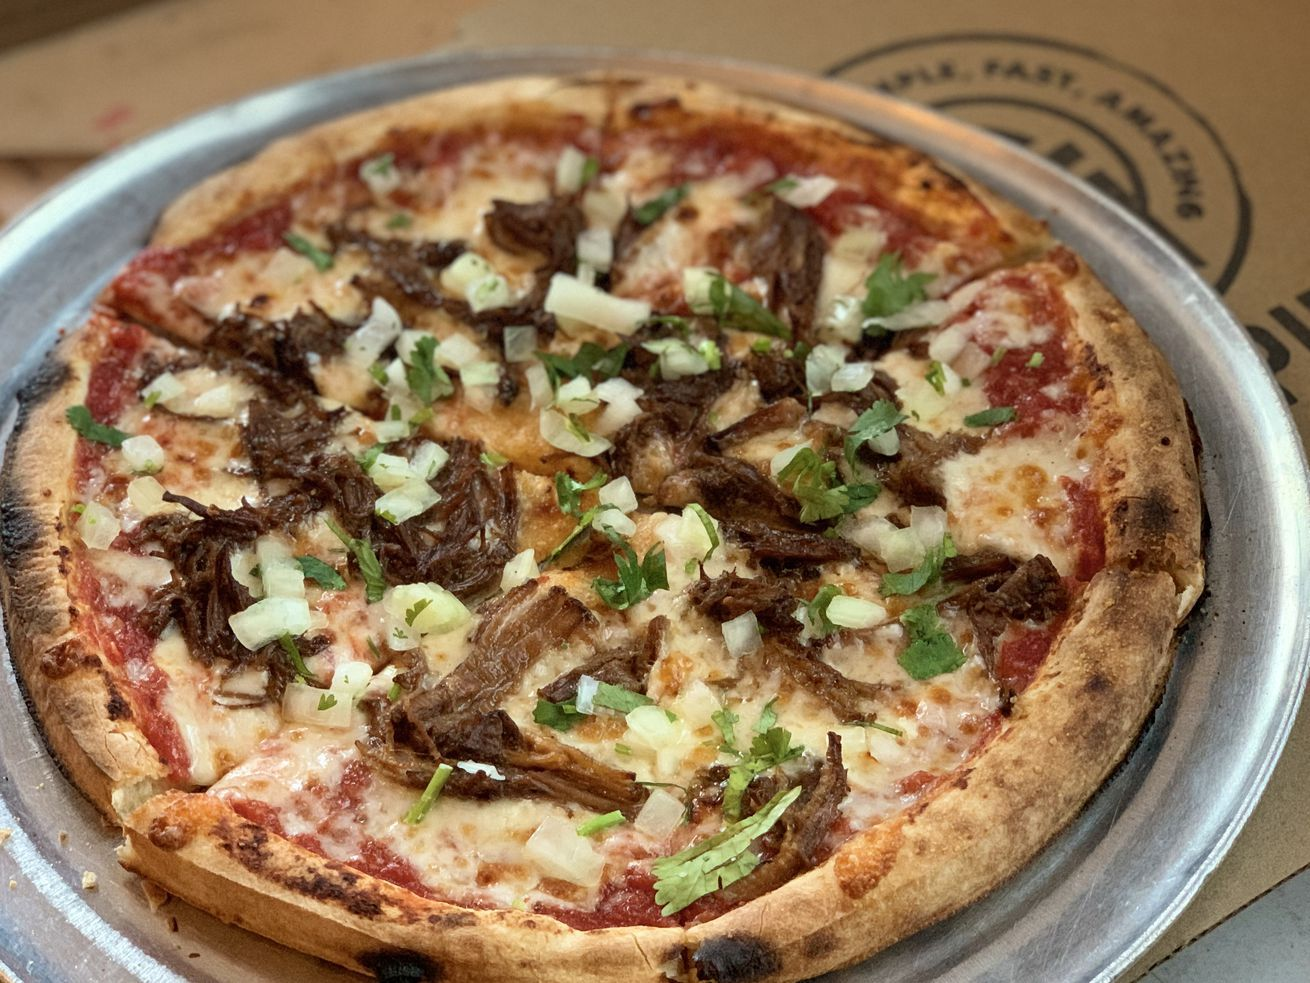 Now You Can Eat Your Birria On A Wood Fired Pizza Hispanic Food Pizza New Pizza